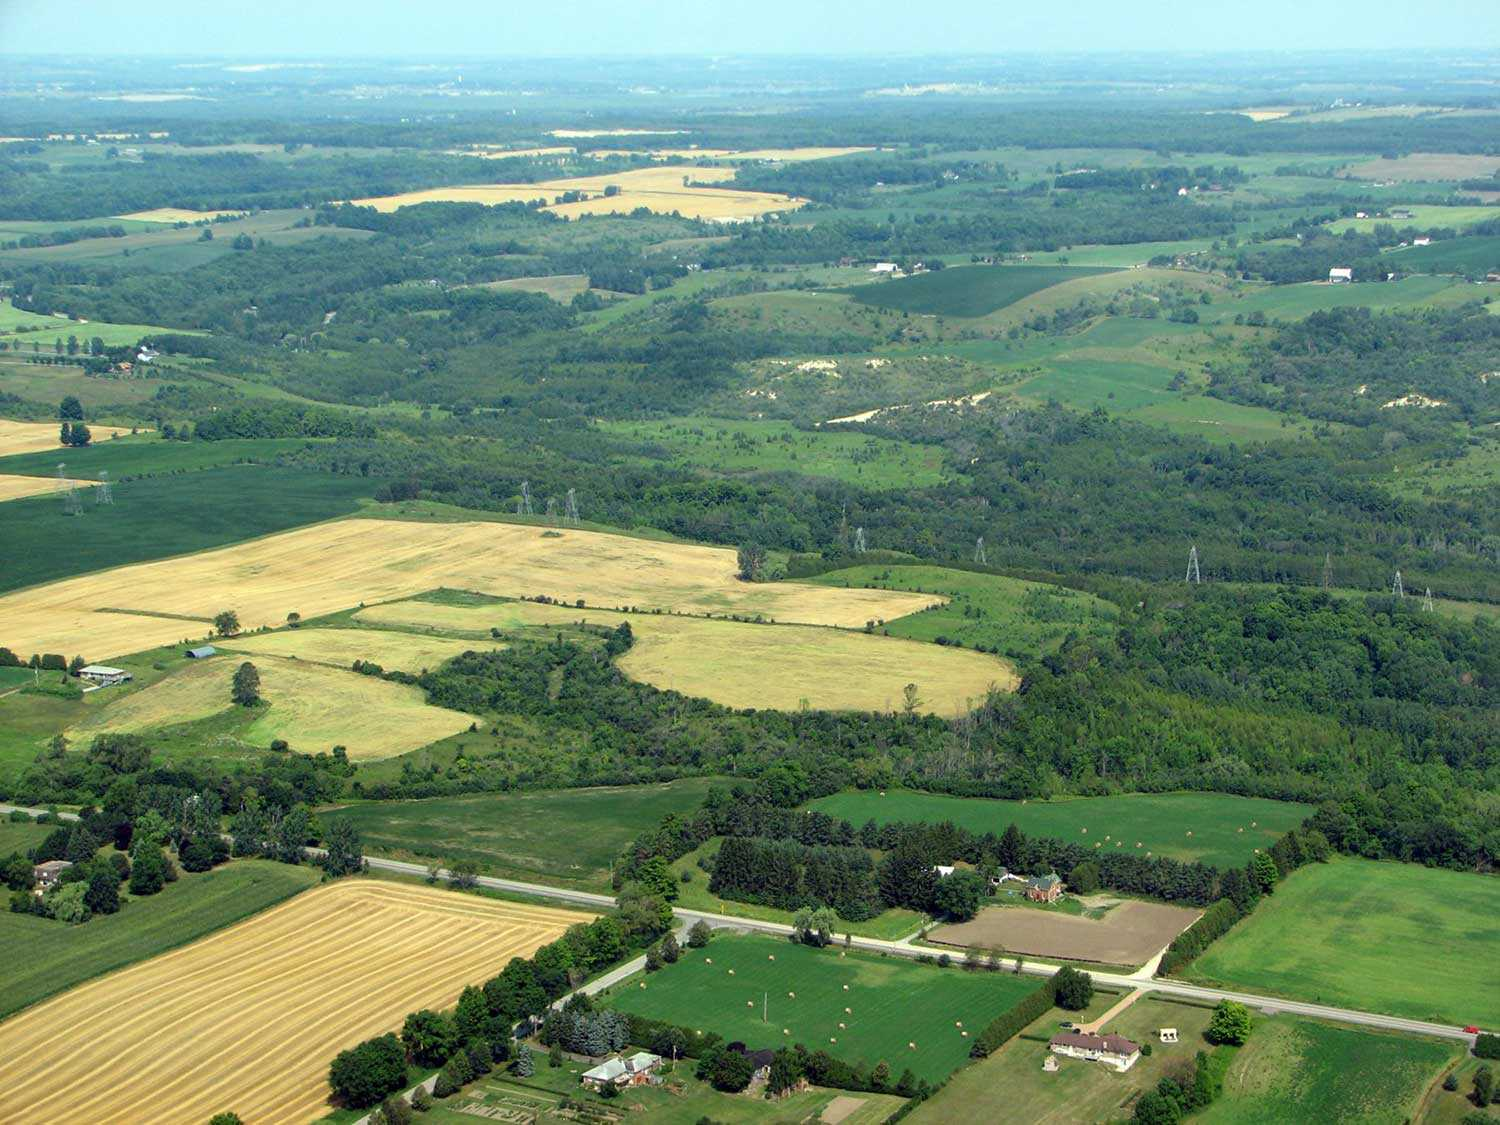 An aerial view of the Enniskillen Valleylands (Photo courtesy of the Central Lake Ontario Conservation Authority)